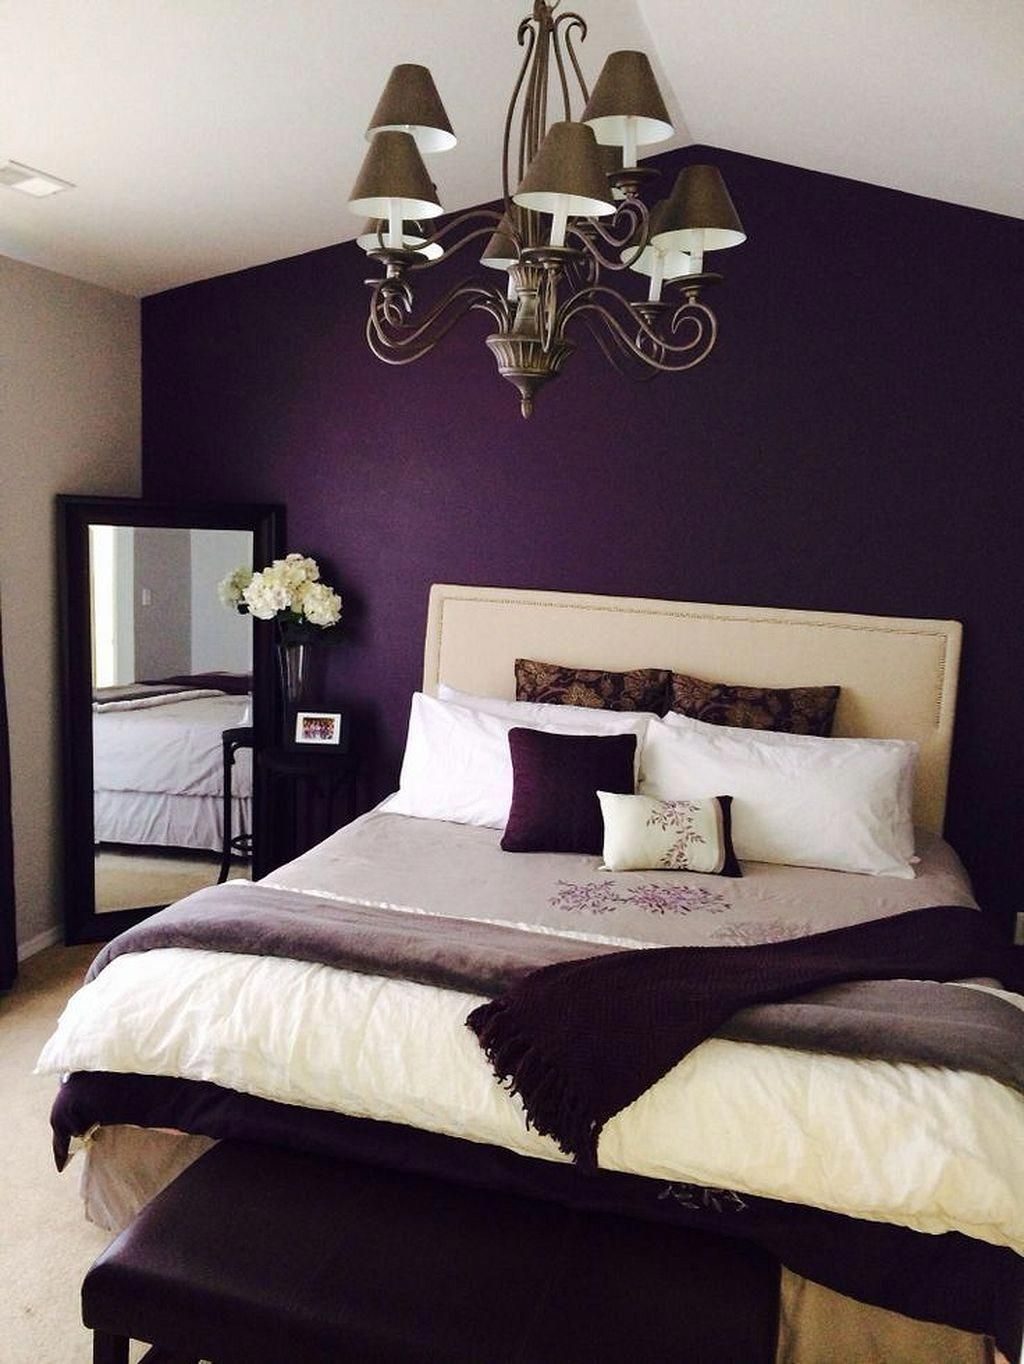 Romantic bedroom master bedroom bedroom decor ideas  Pin by Ideas For Home Decorating on Bedroom decorating ideas